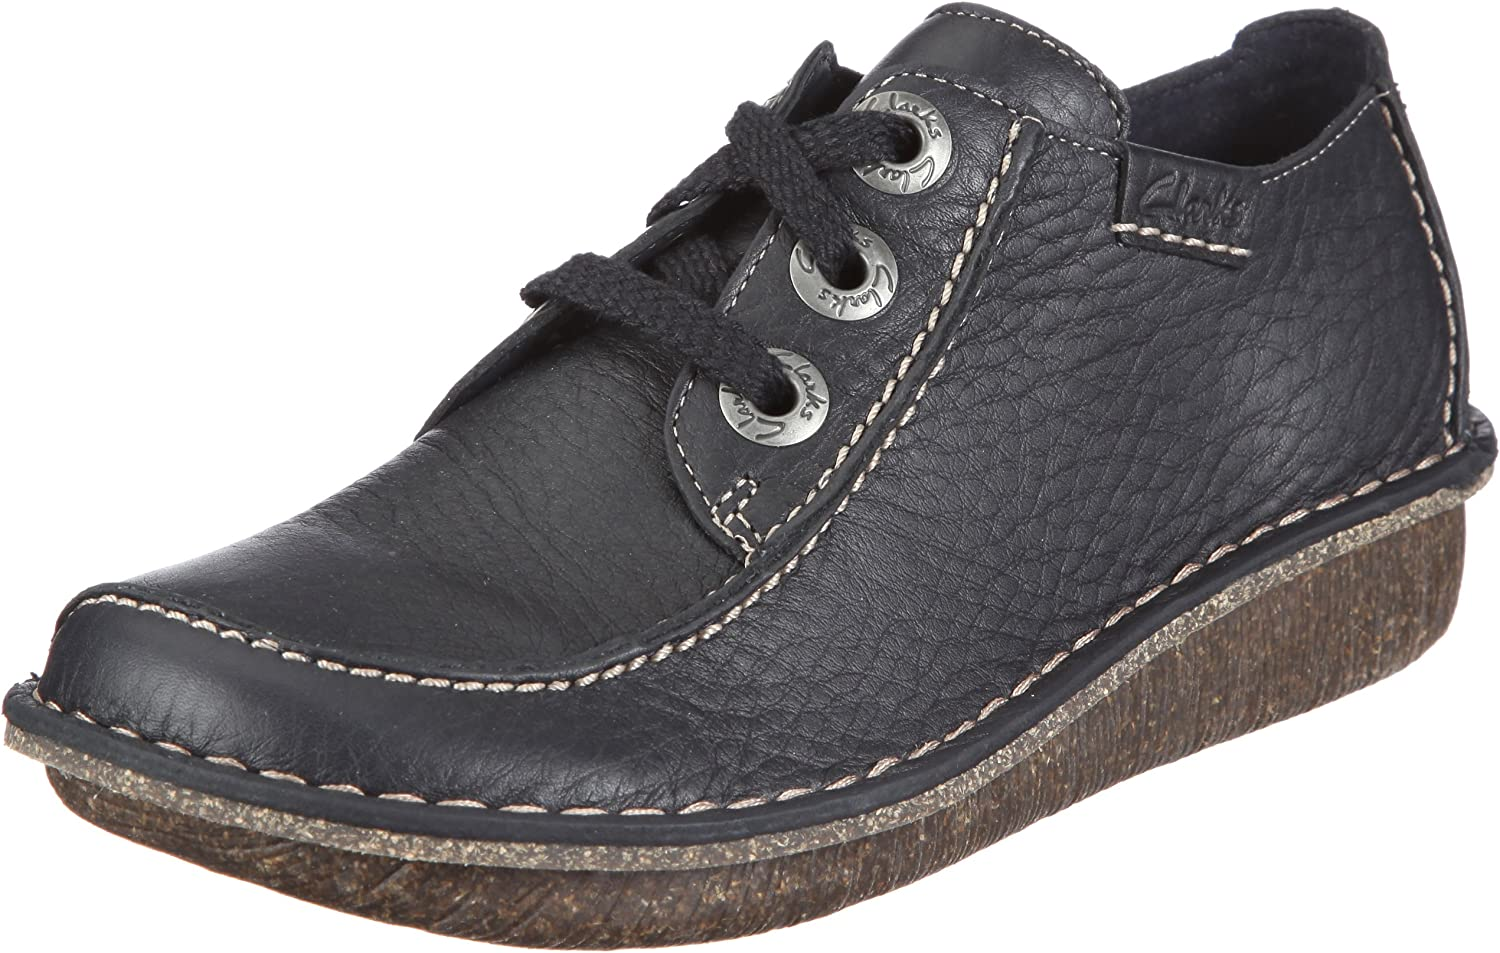 Clarks Women's Funny Dream Lace-Up Shoes